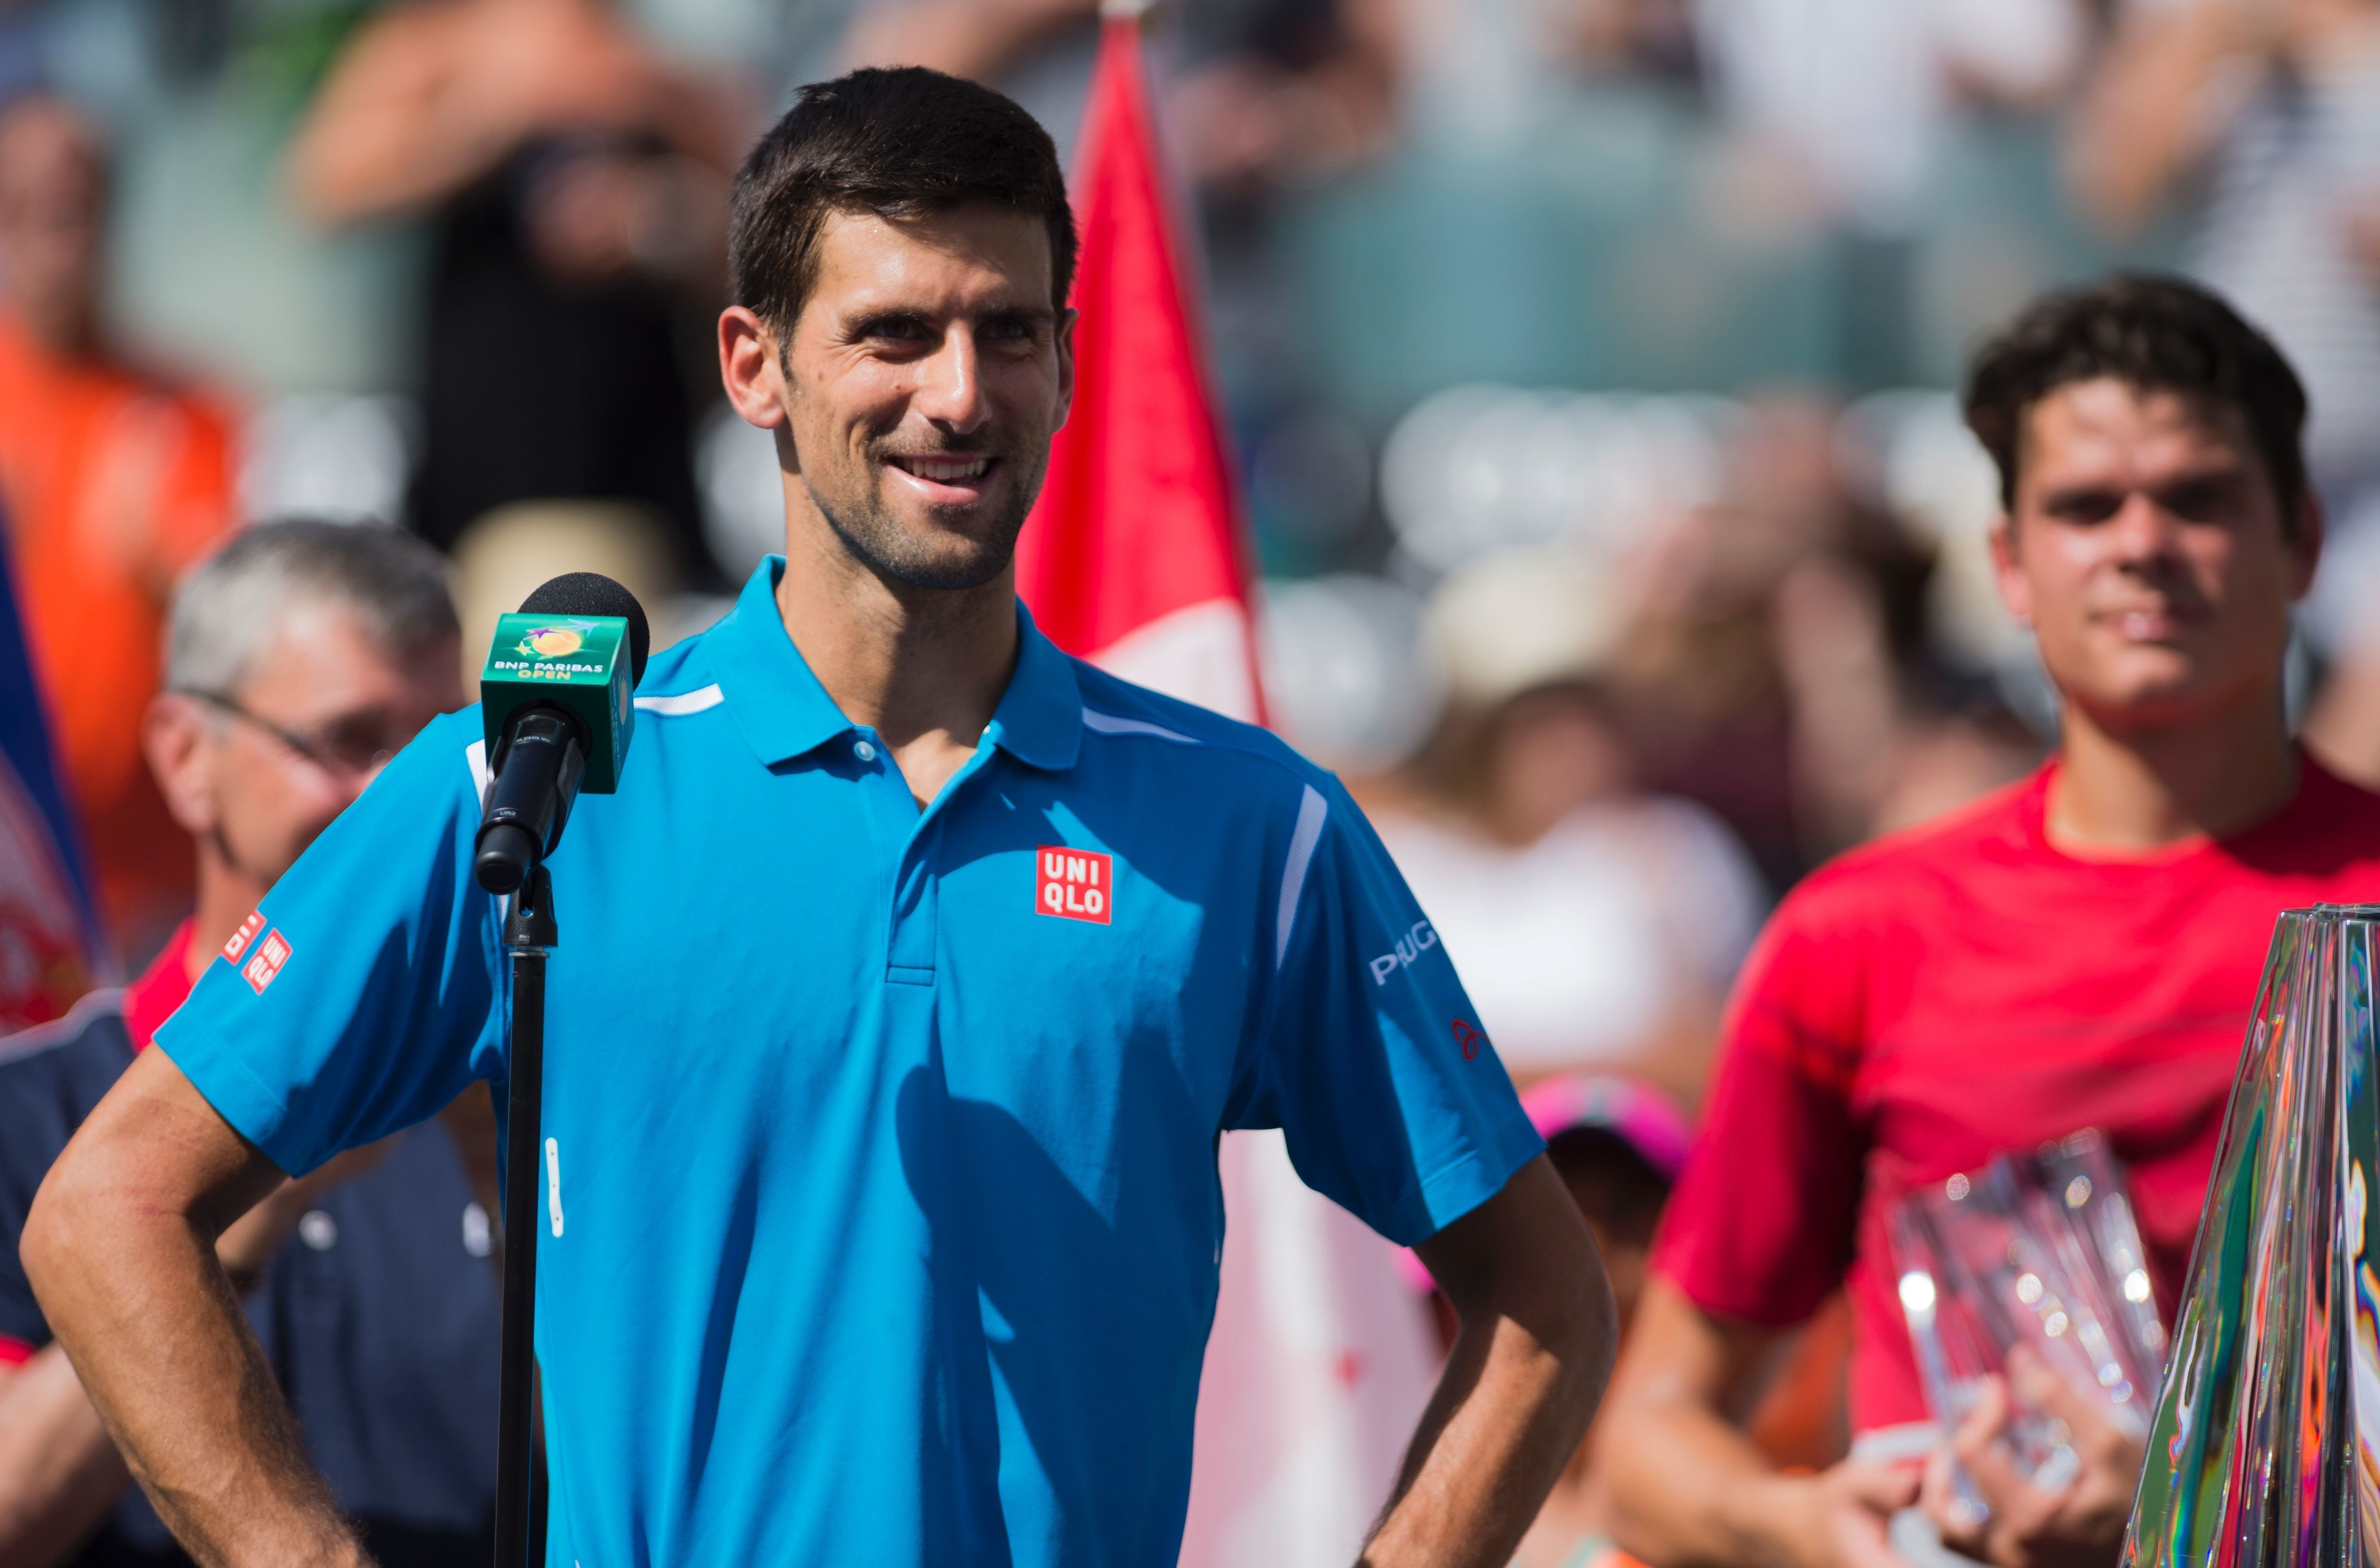 Novak Djokovic's Equal Pay Comments Given Withering Response From Female